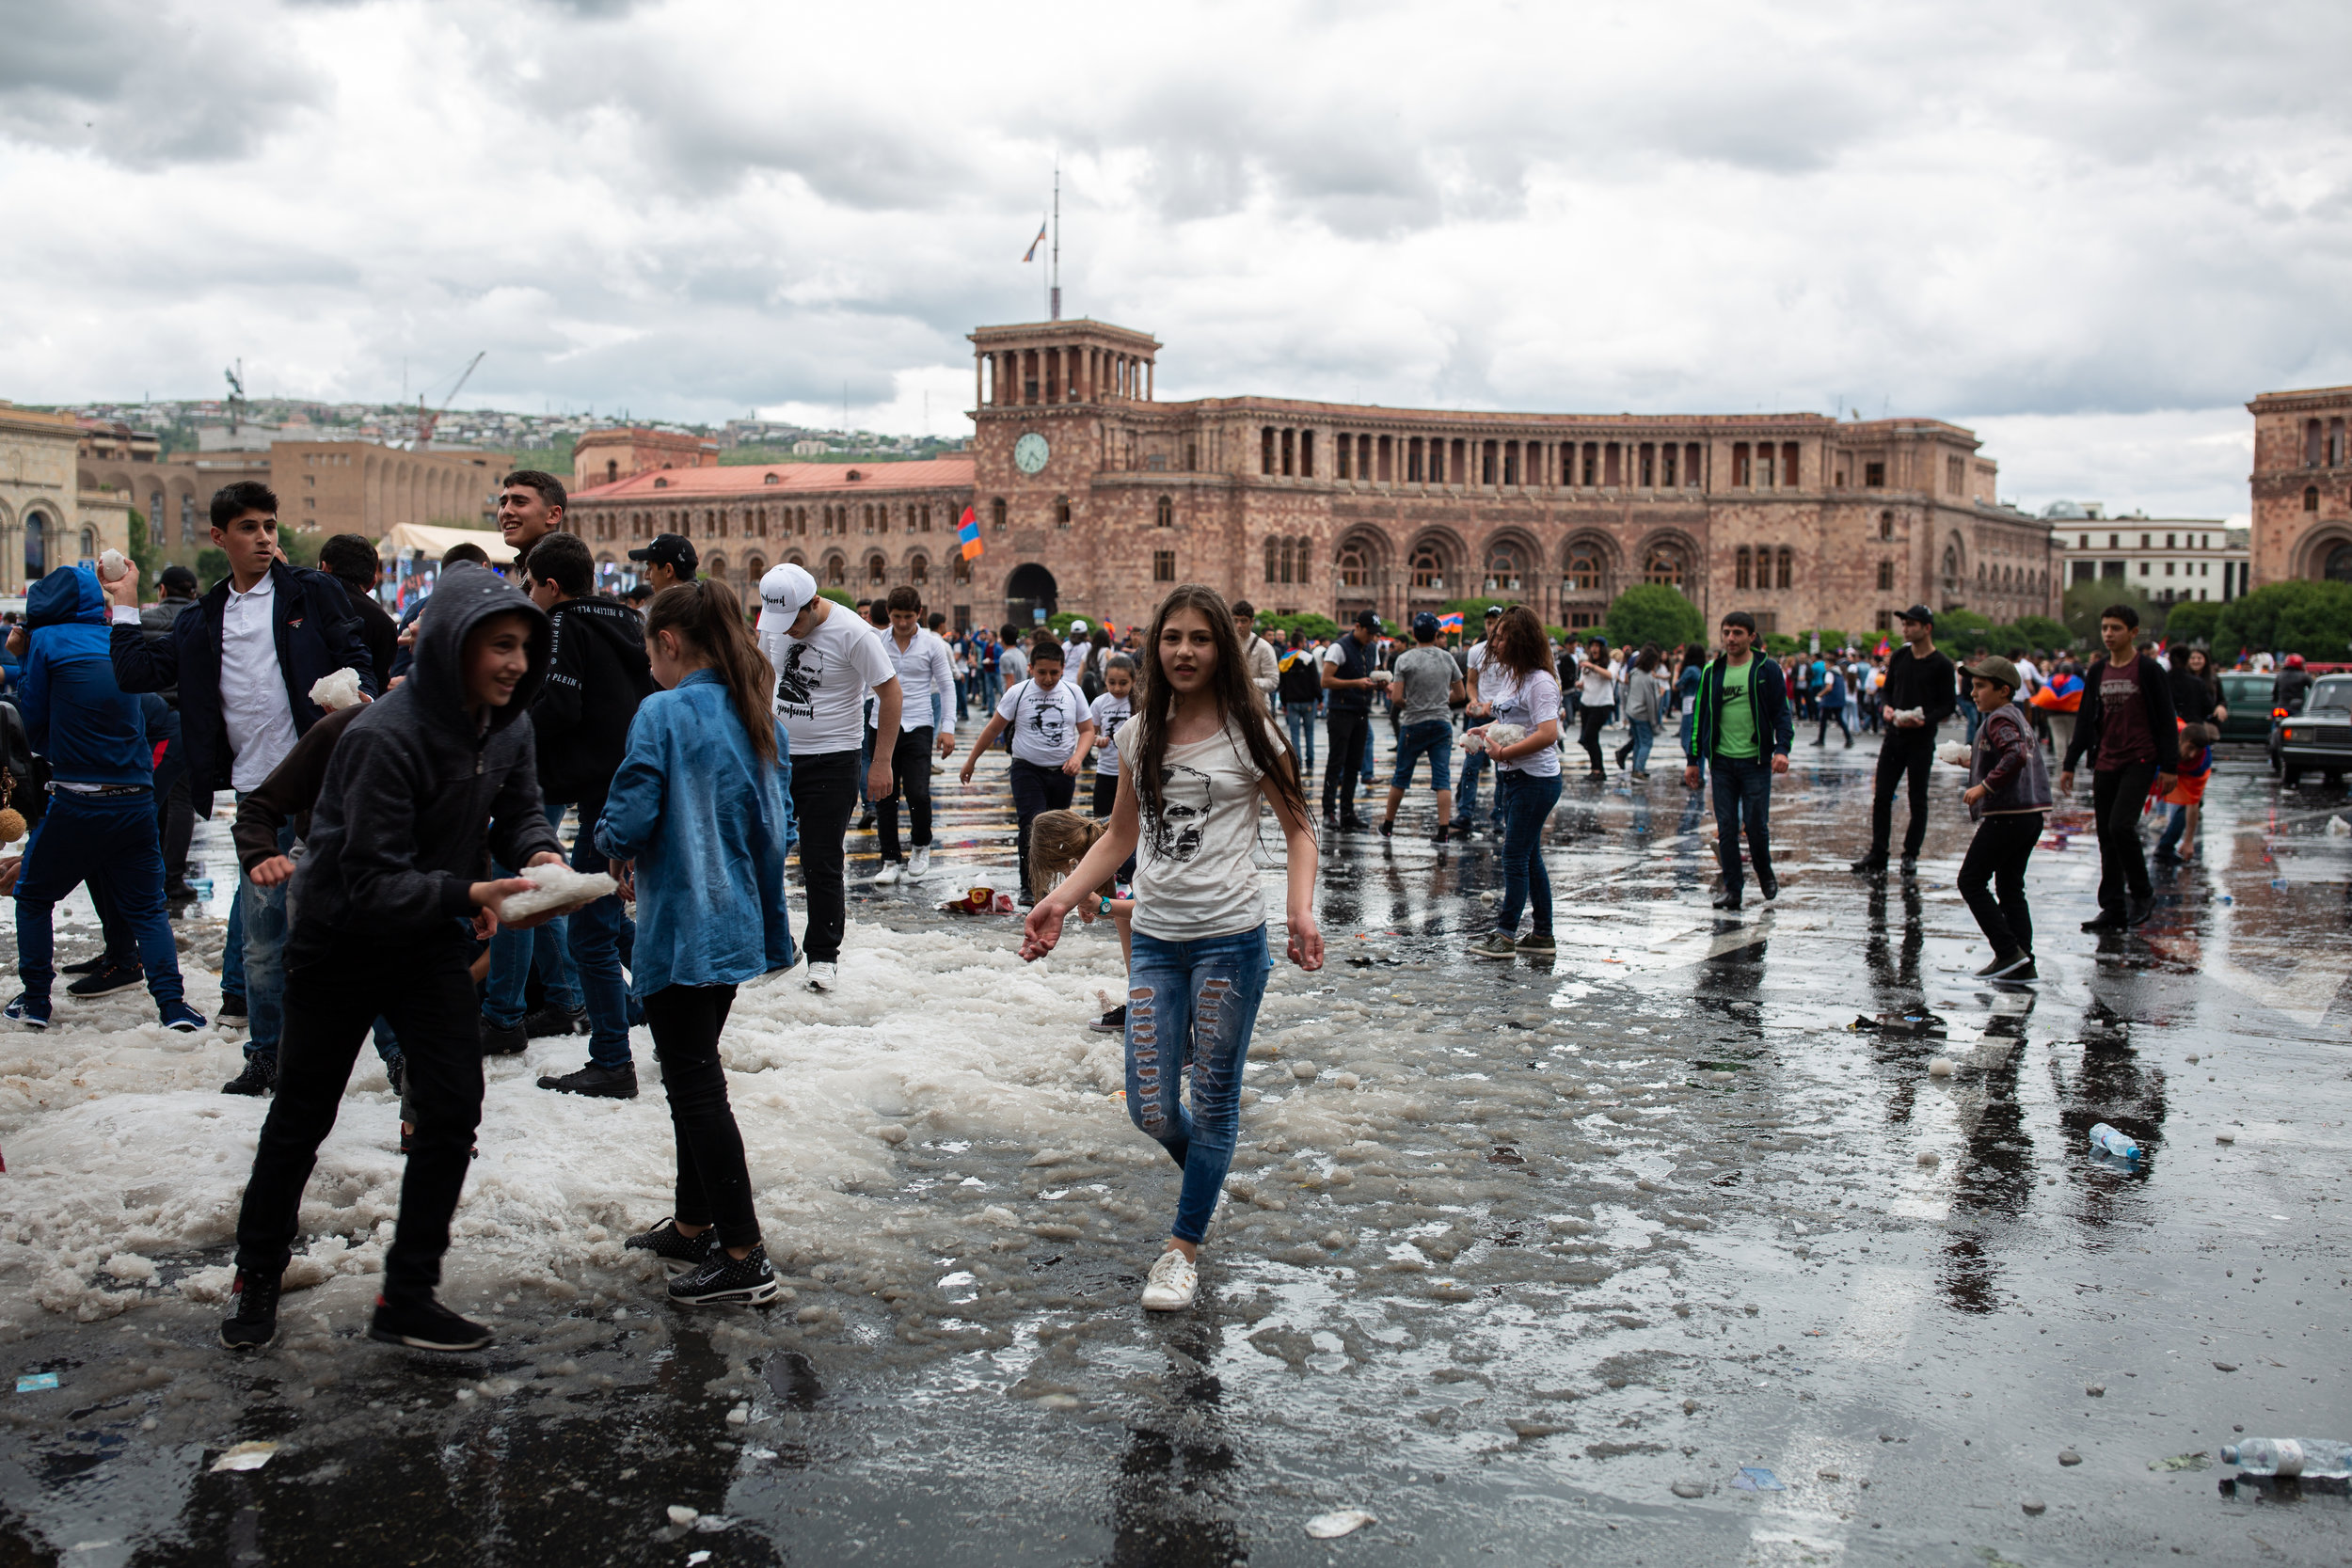 Snowball fights in Republic Square